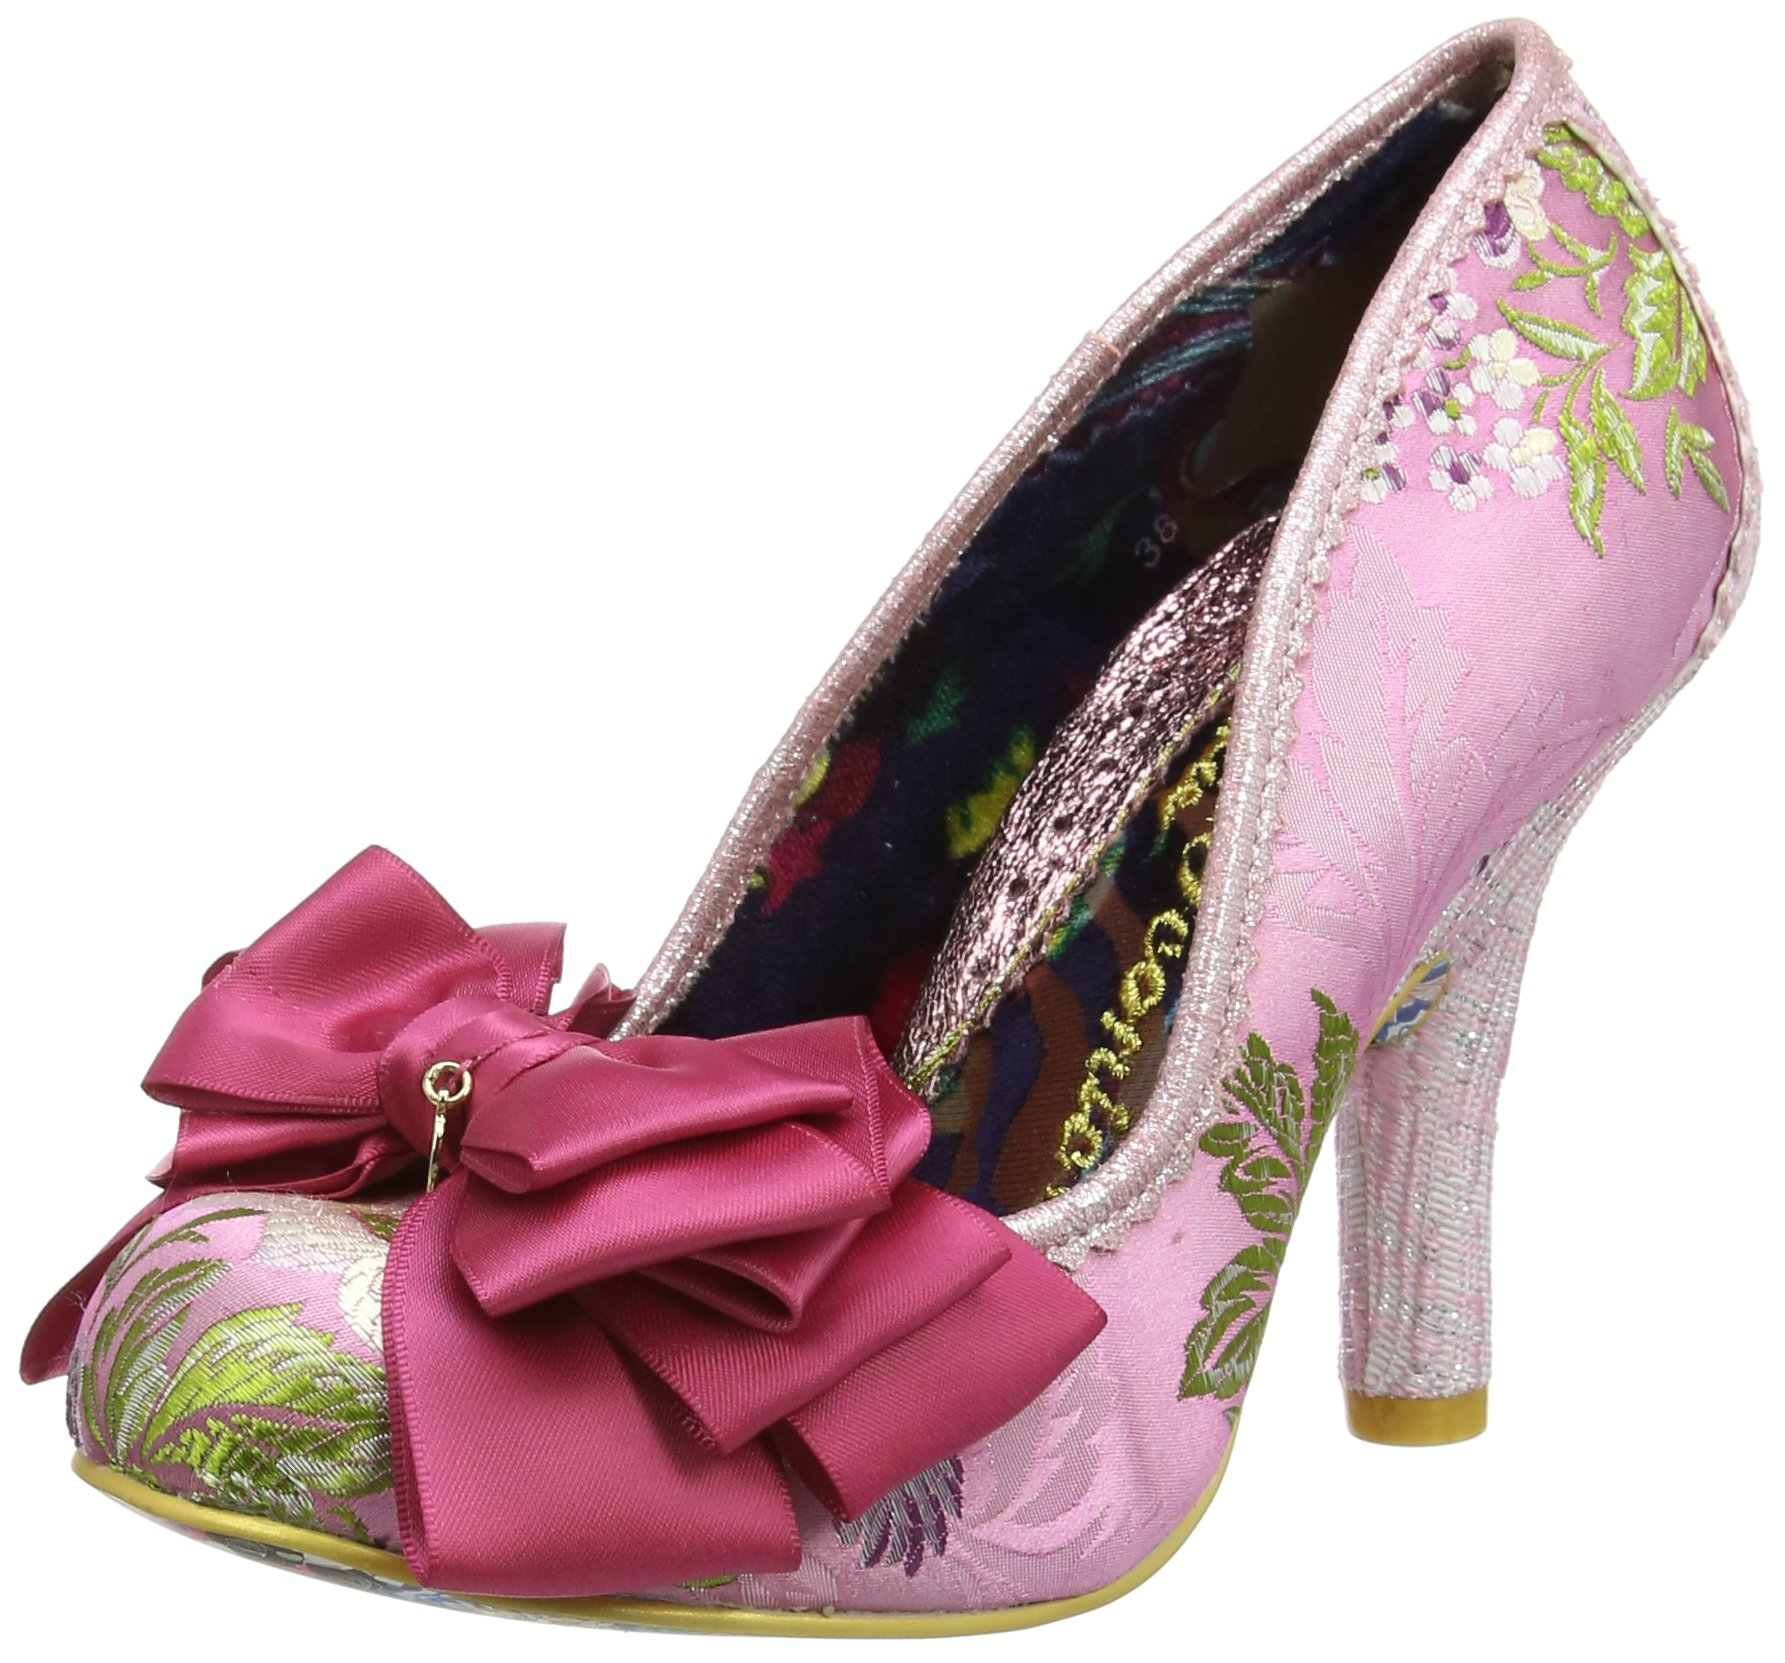 Fermé FemmeRosepink 5 Uk AscotEscarpins Multi406 Irregular Choice Bout LS35ARjqc4